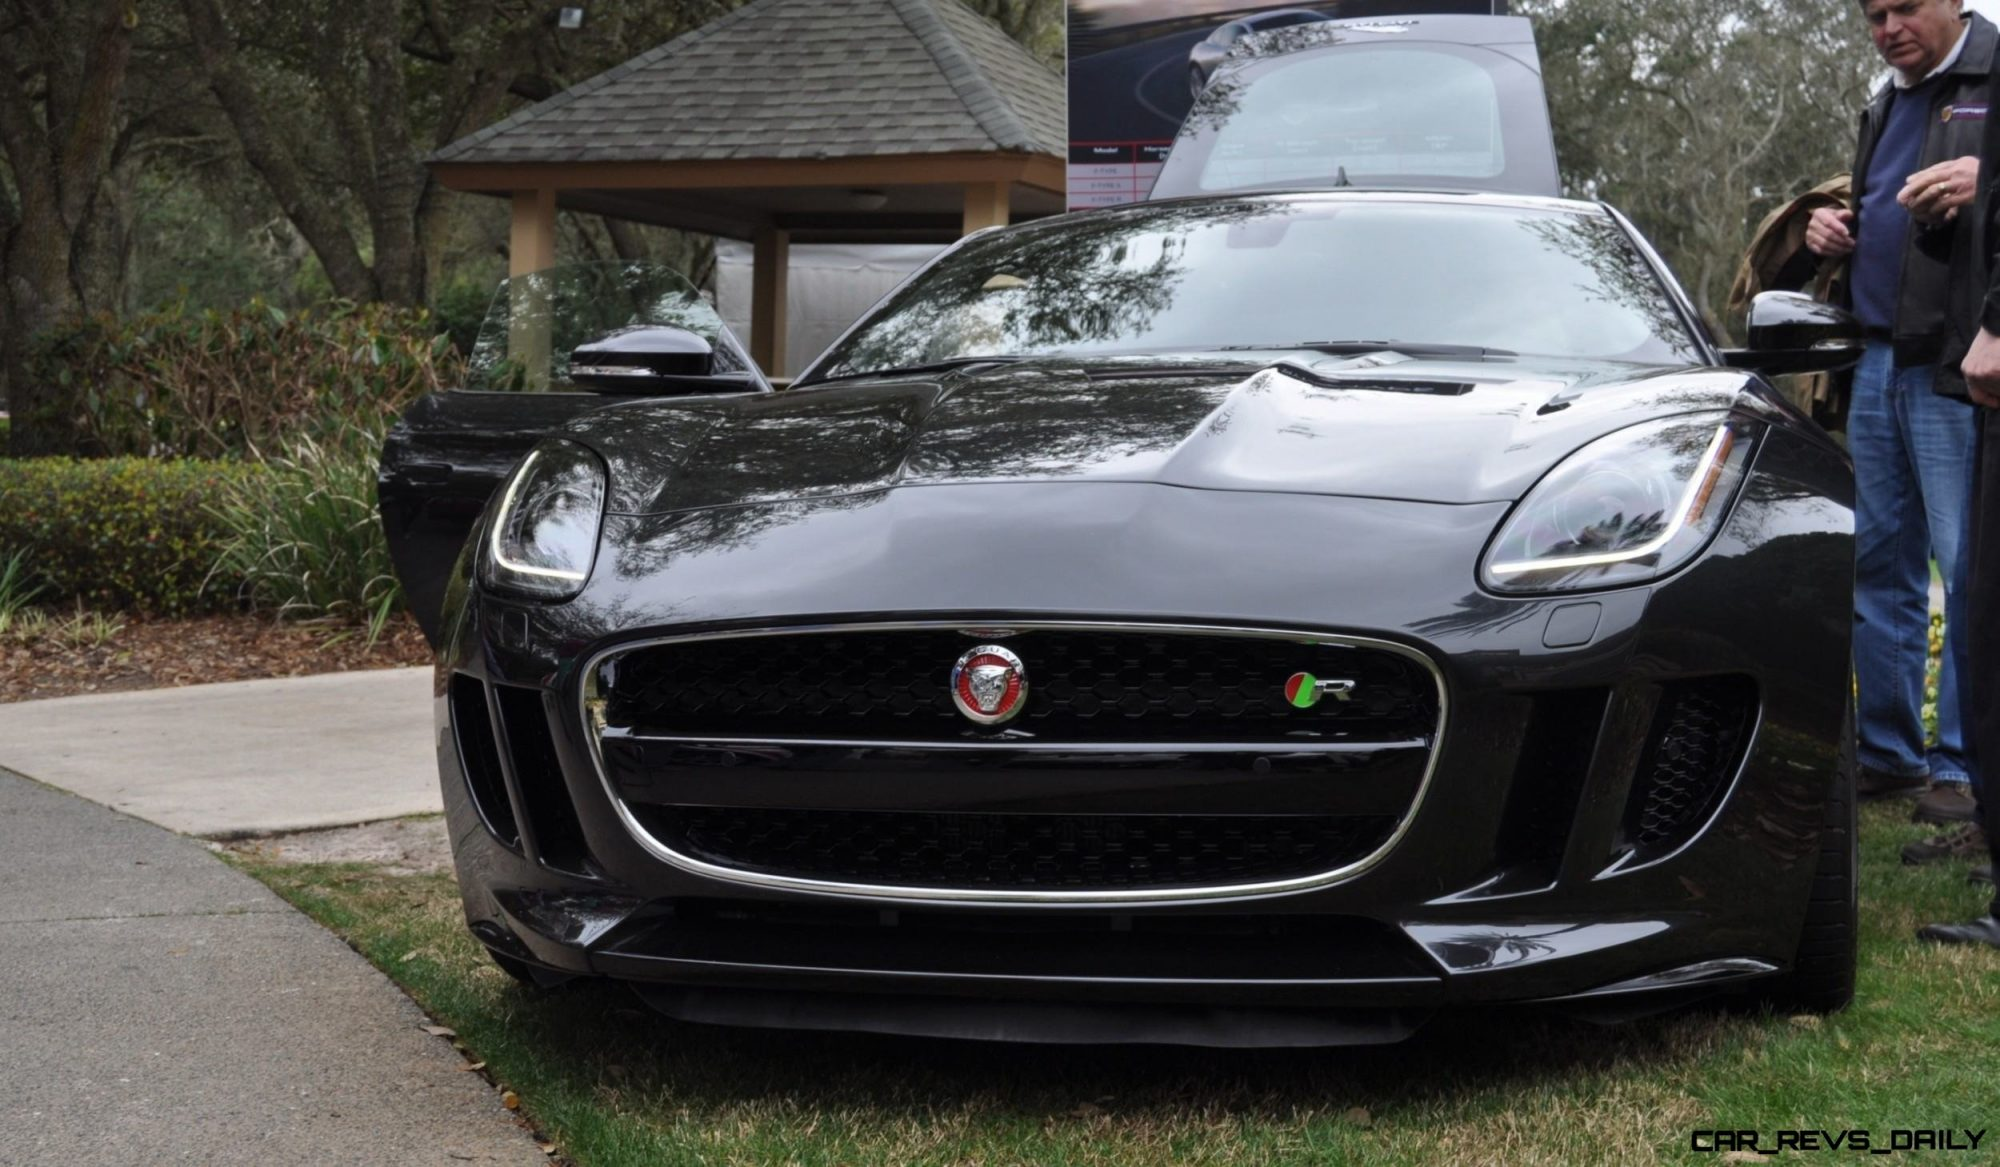 2015 JAGUAR F-TYPE R Coupe -- Lifts Its Bonnet to Show 550HP 5